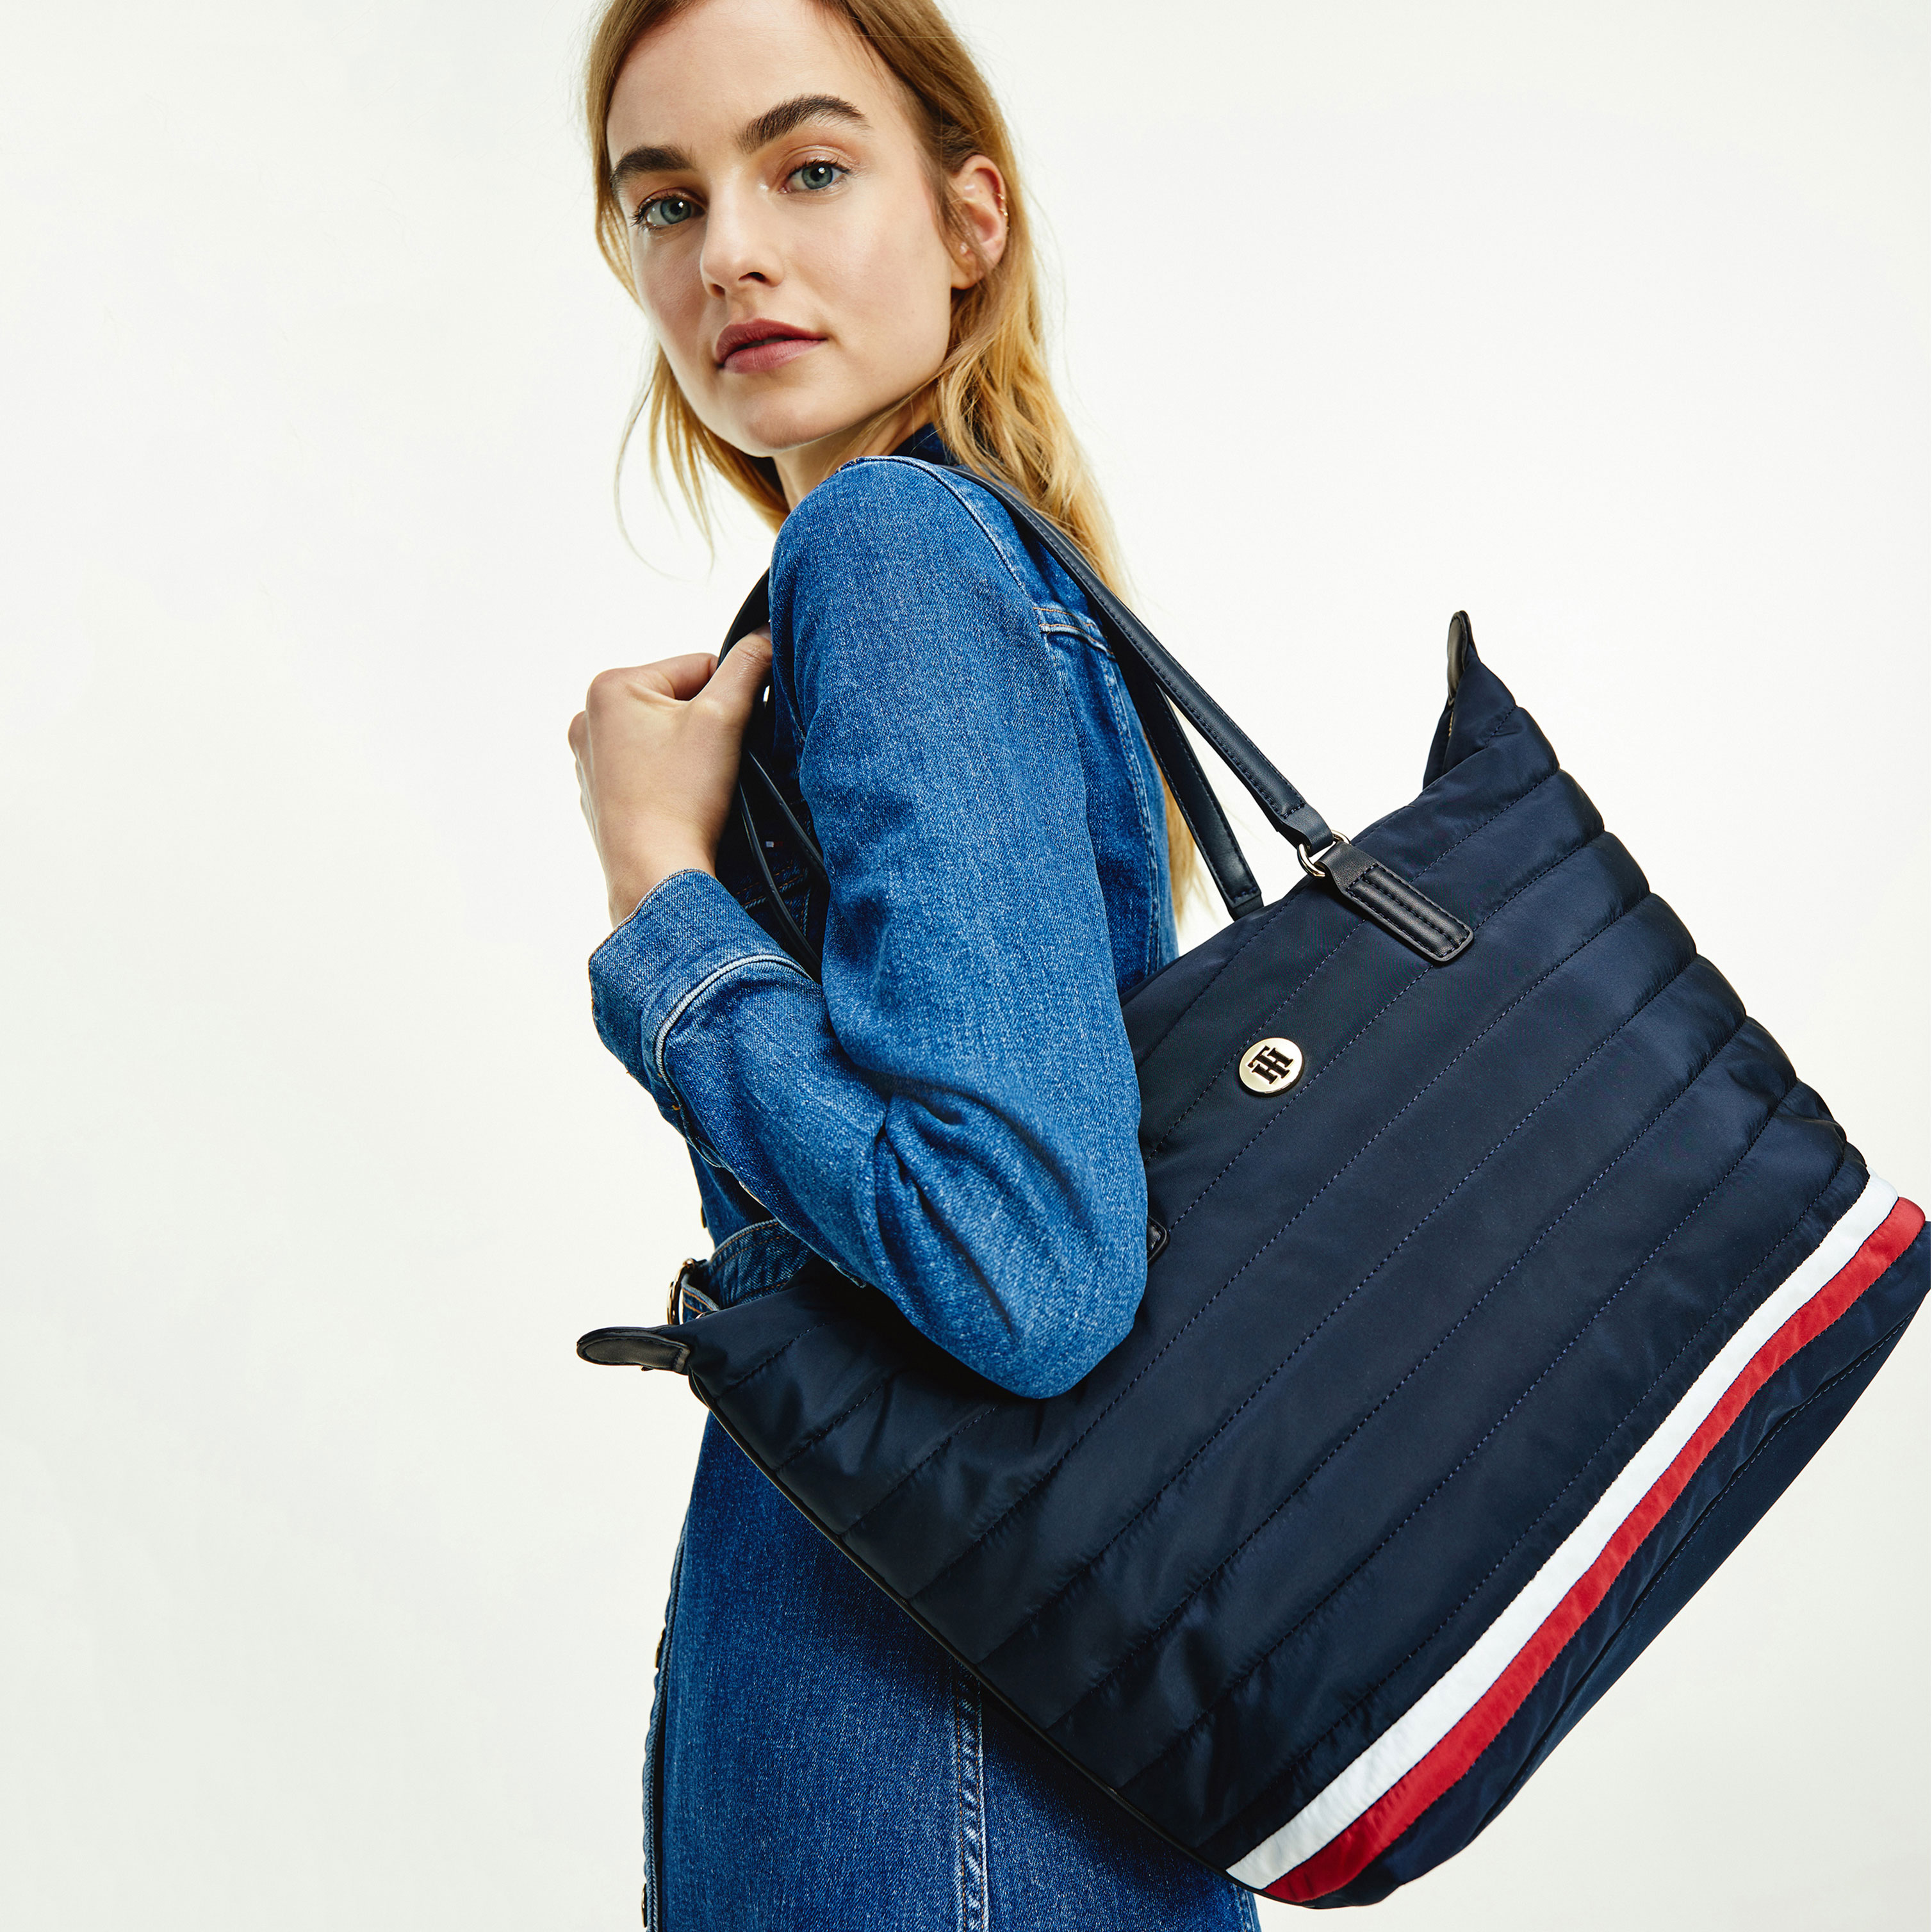 TOMMY HILFIGER Marroquinería Bolso Poppy Tote Quilt AW0AW10473-DW5